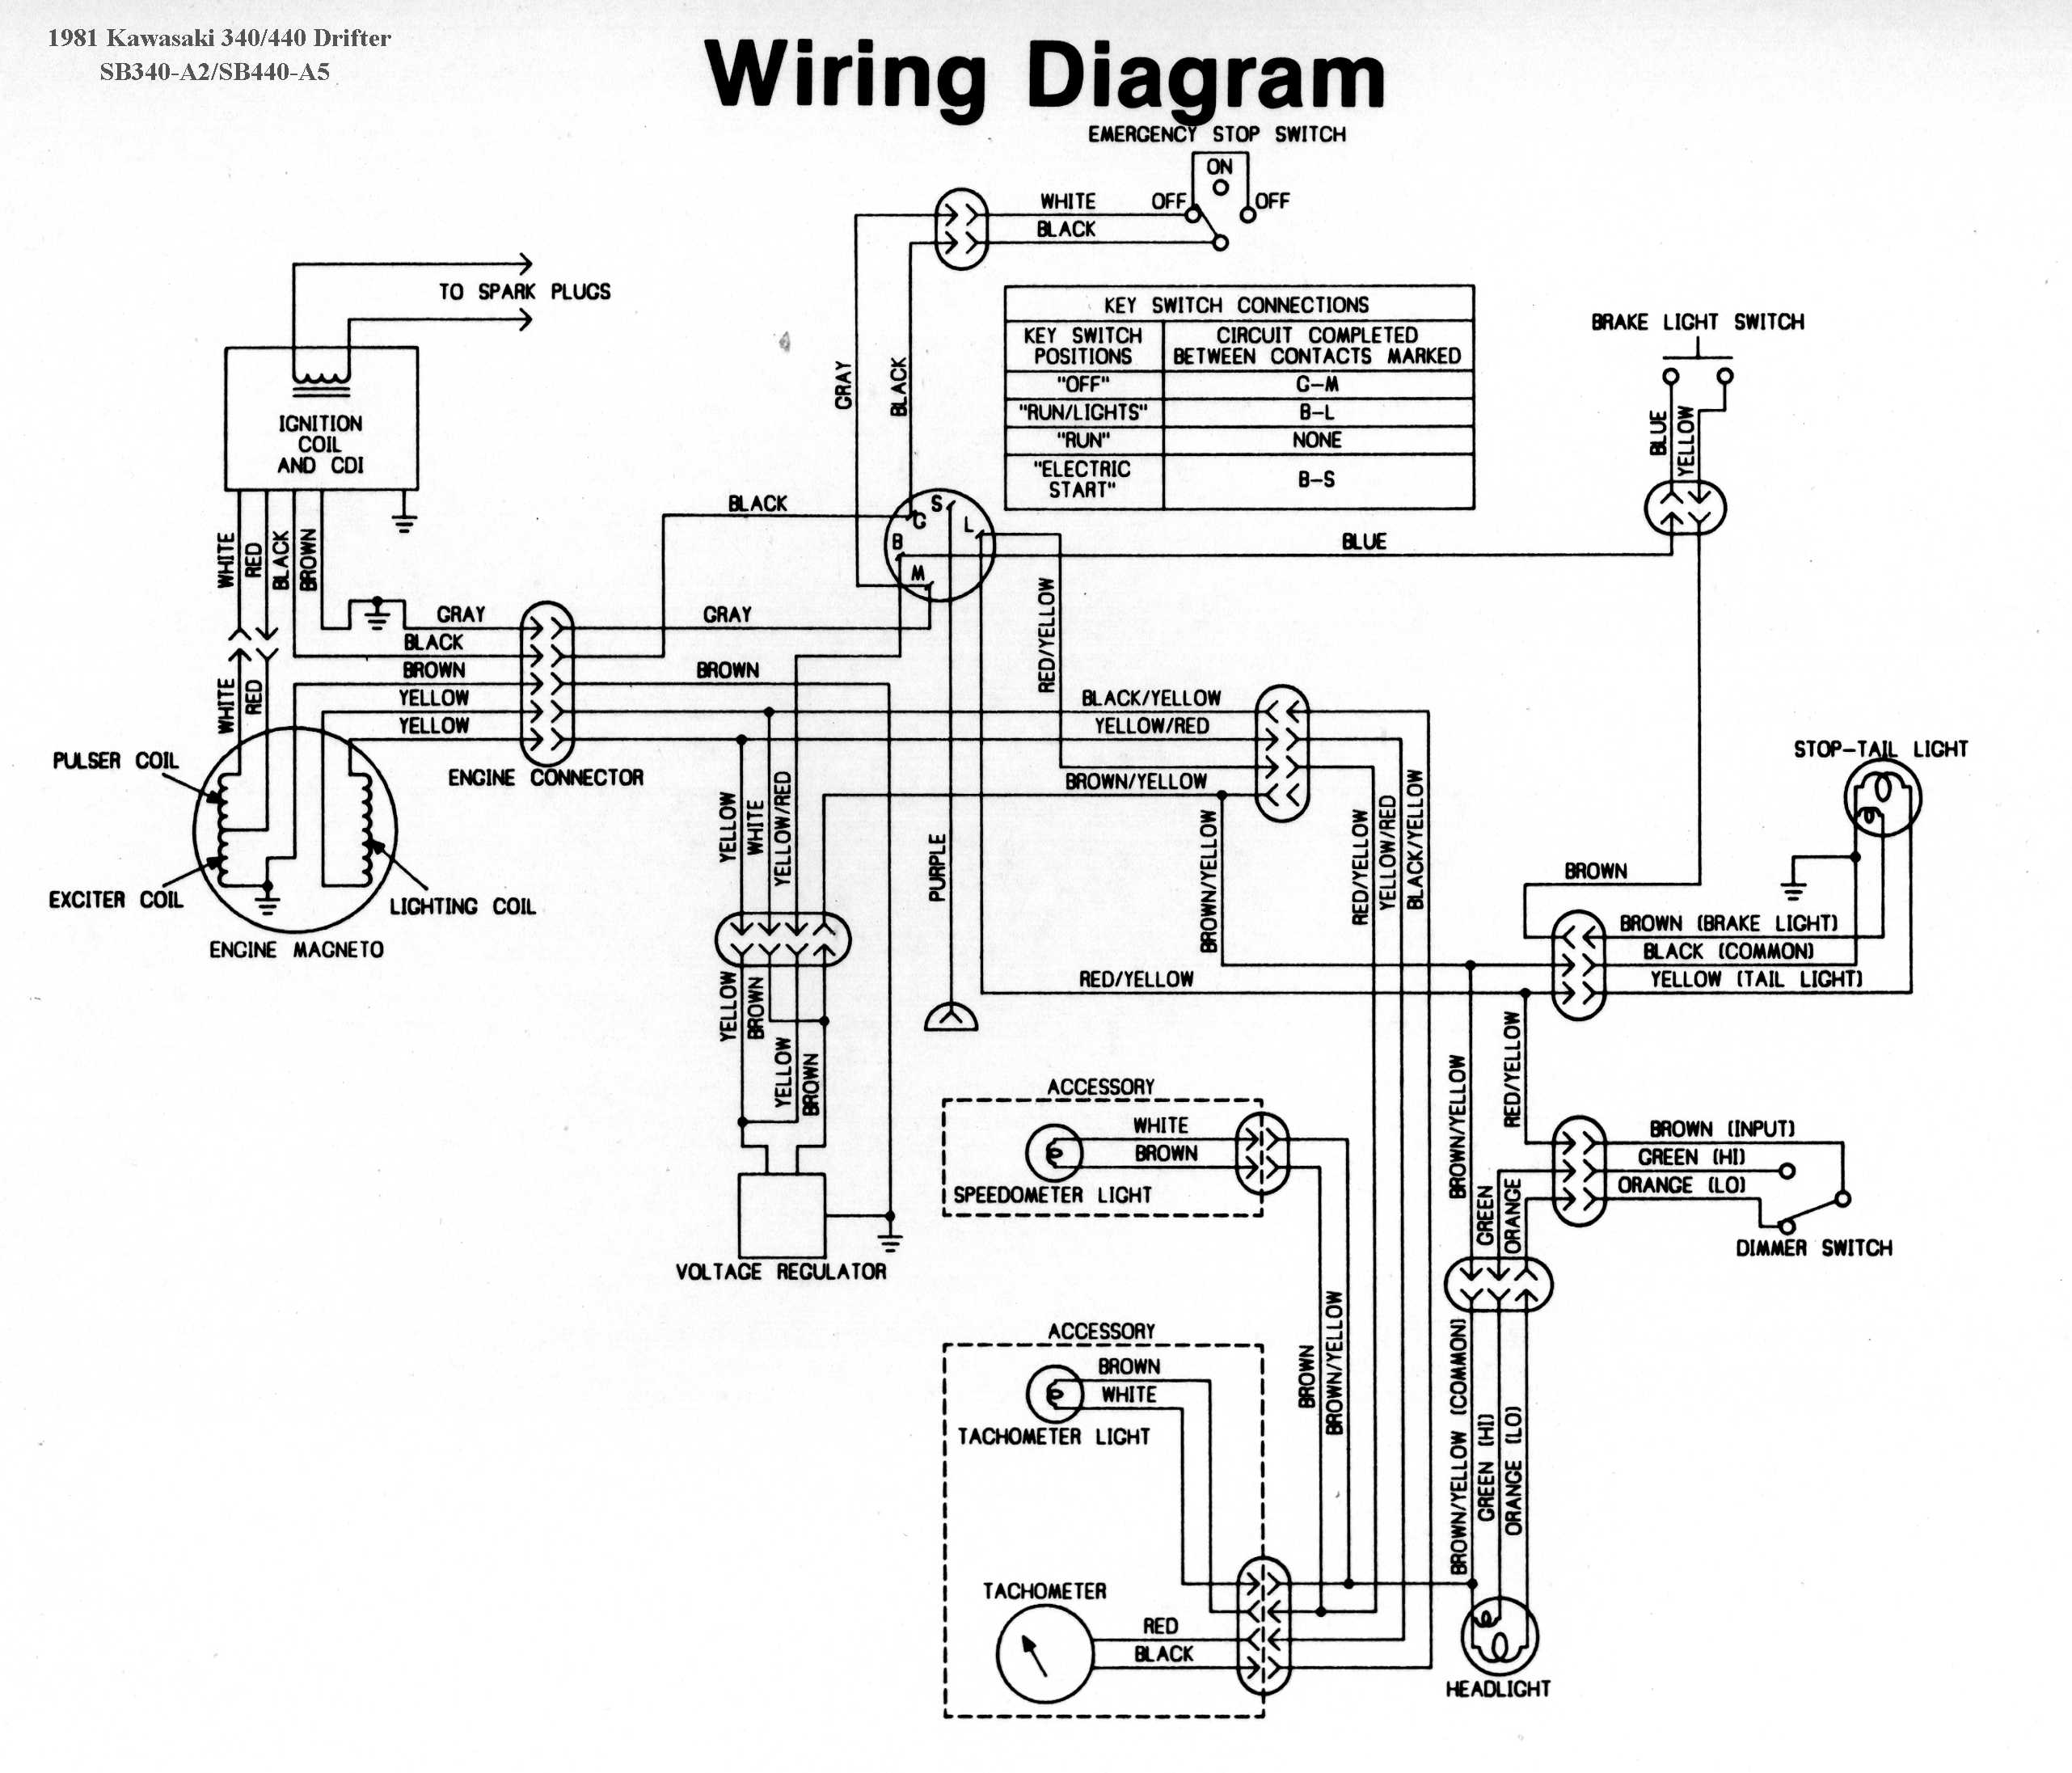 🏆 [DIAGRAM in Pictures Database] Jag 340 Wiring Diagram Just Download or  Read Wiring Diagram - DASHBOARD-LAMP.ONYXUM.COMComplete Diagram Picture Database - Onyxum.com